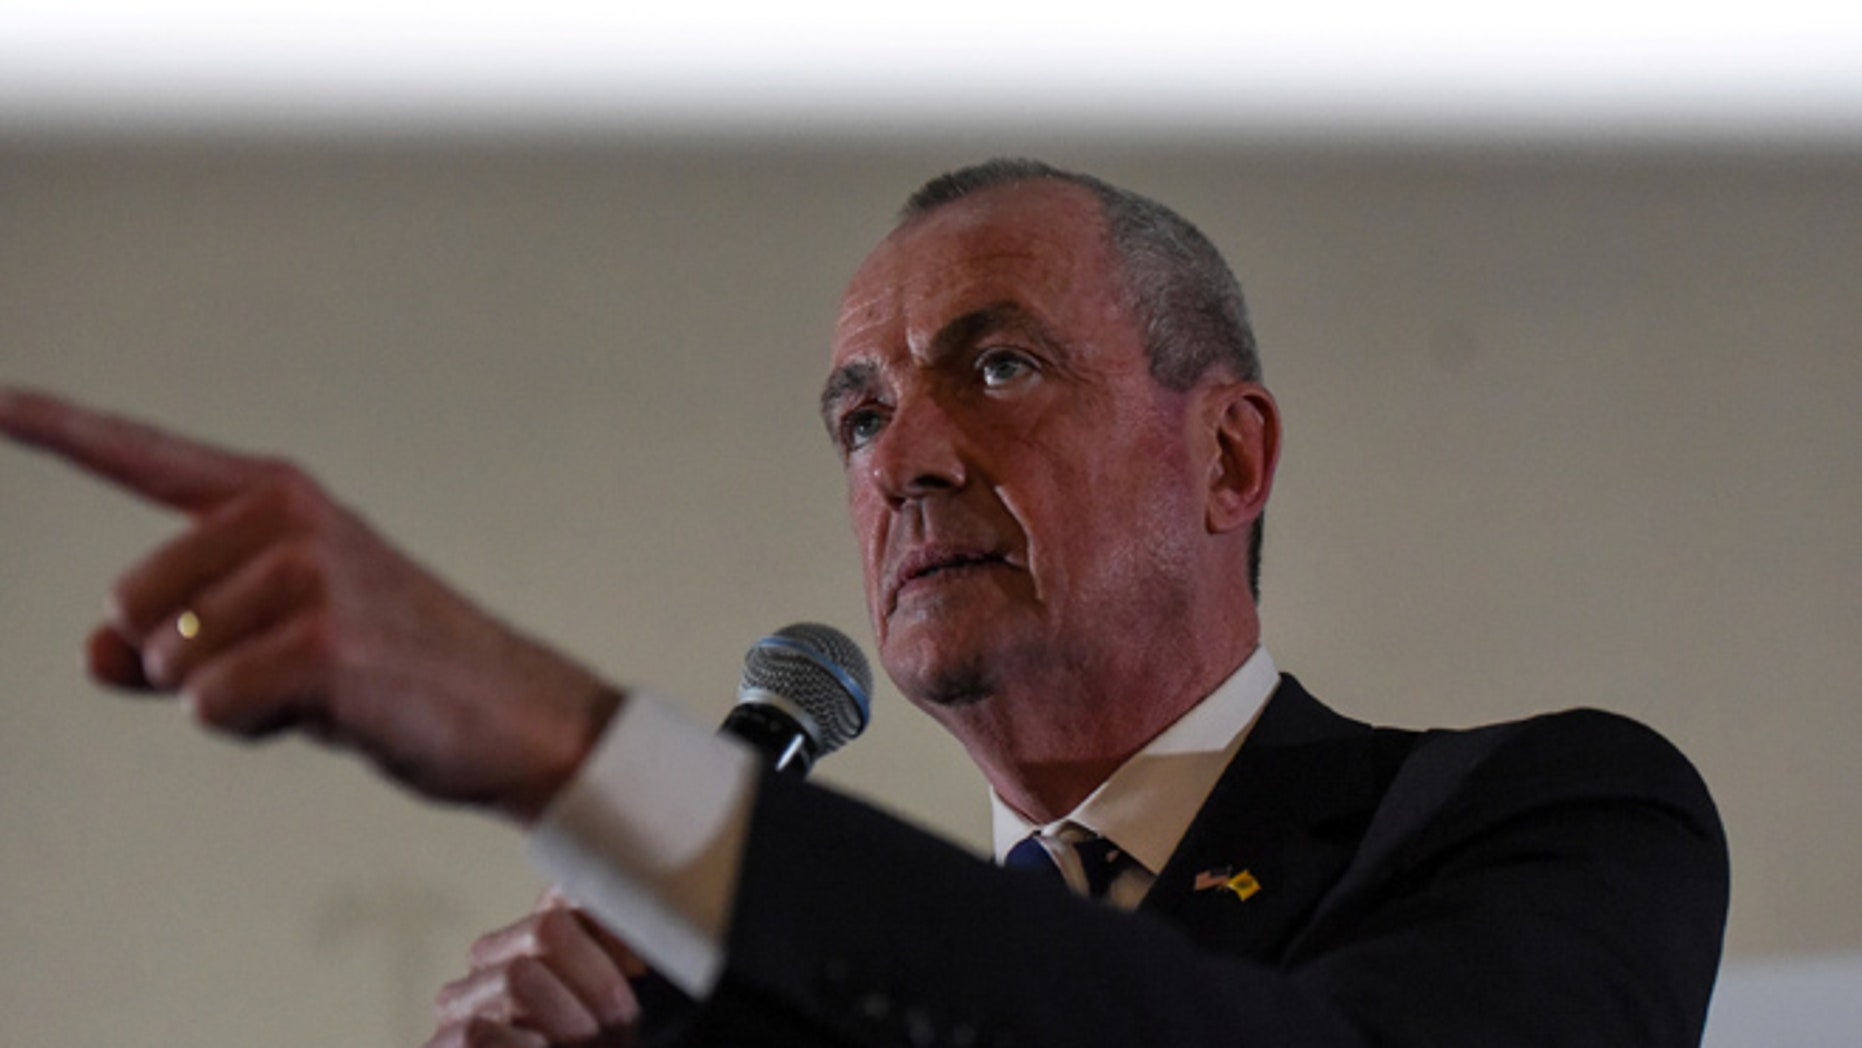 Whether Democrat Phil Murphy and his inner circle responded appropriately to a rape allegation against a former campaign staffer is the subject of a new probe organized by the Democrat-held state legislature.